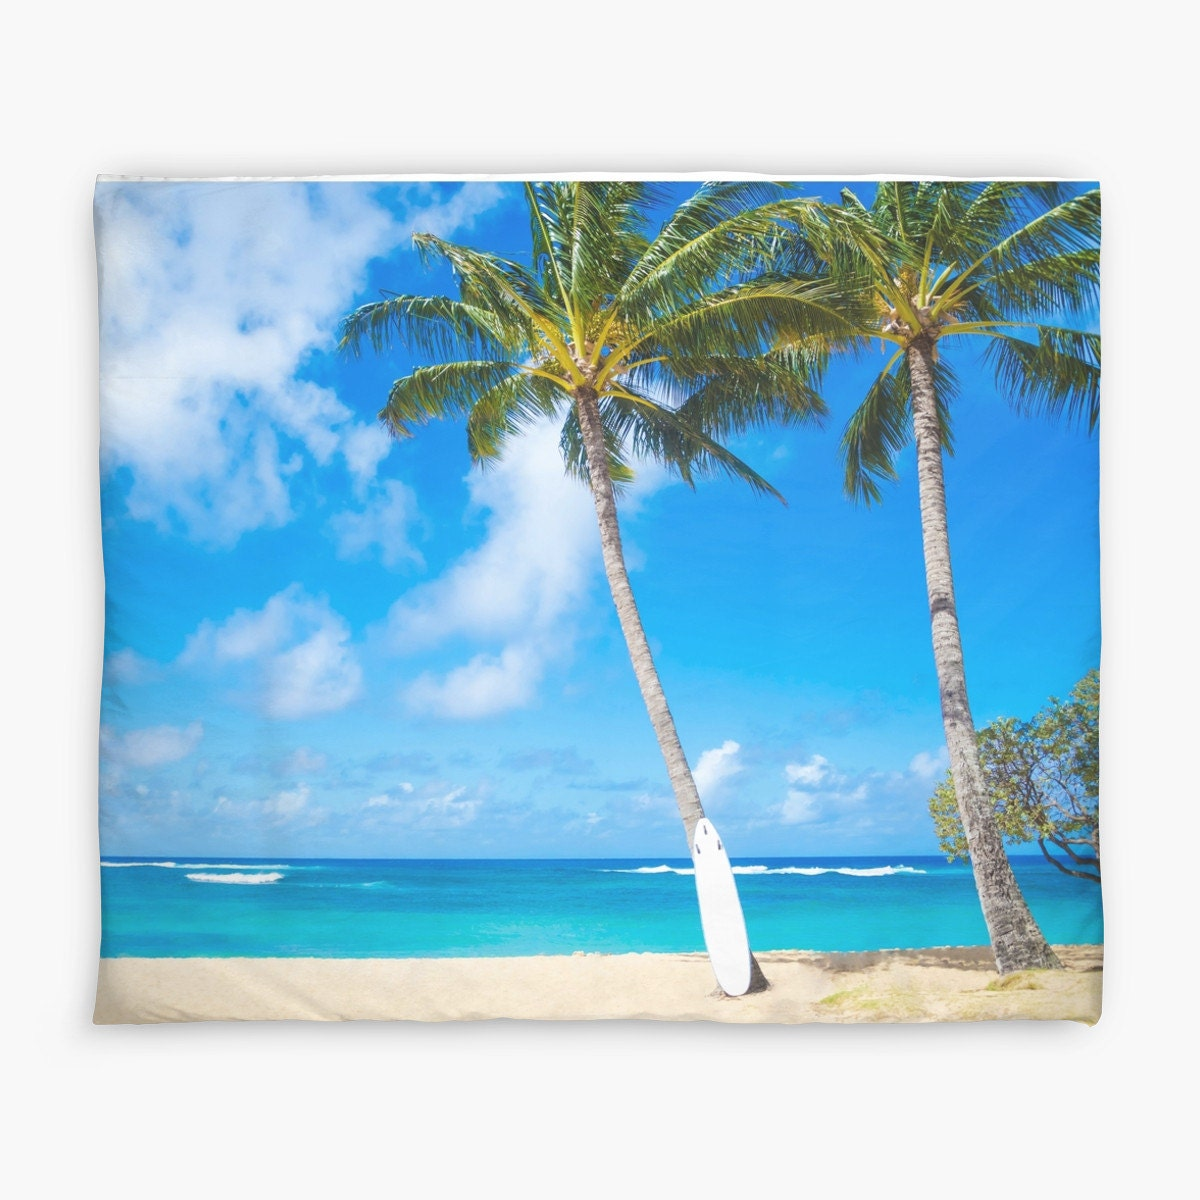 Palm duvet cover with palm tree and surfboard in hawaii water for Parure de lit 240x260